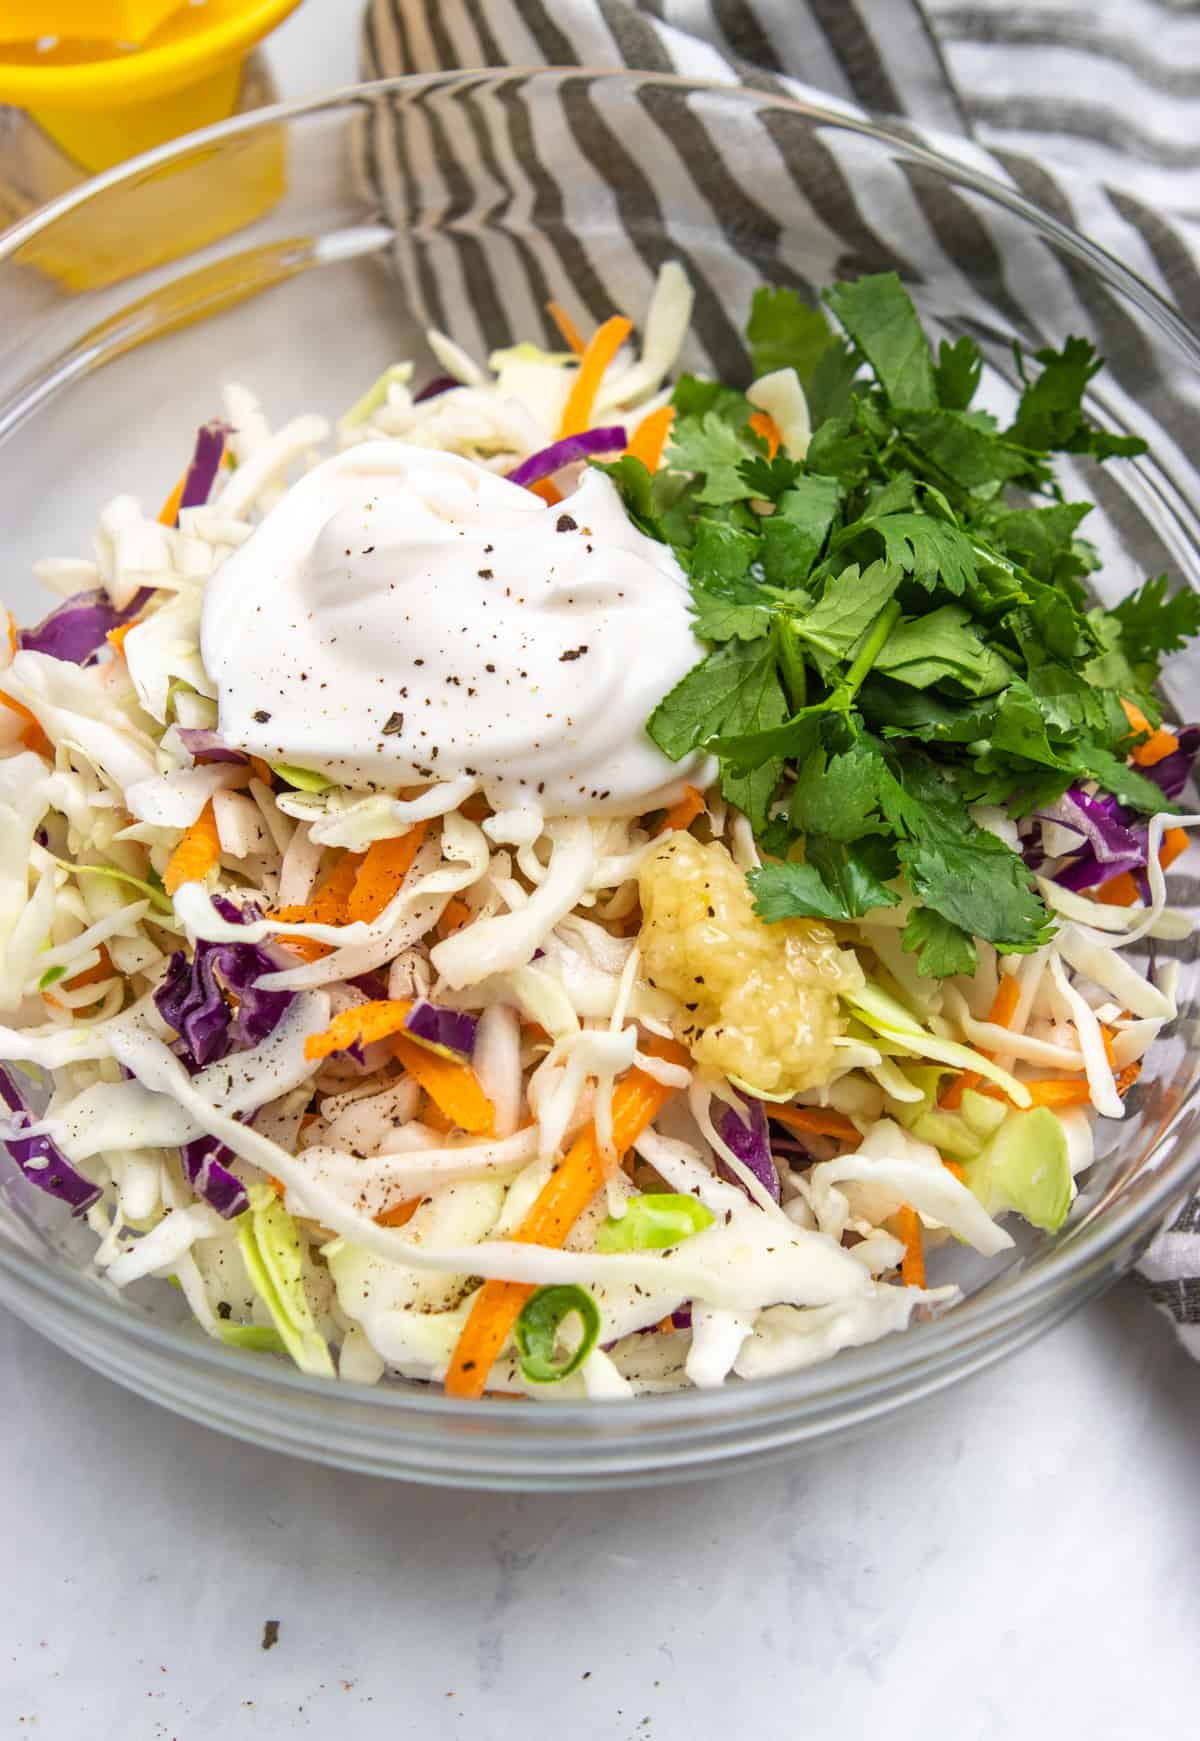 Cilantro lime slaw ingredients in glass mixing bowl.